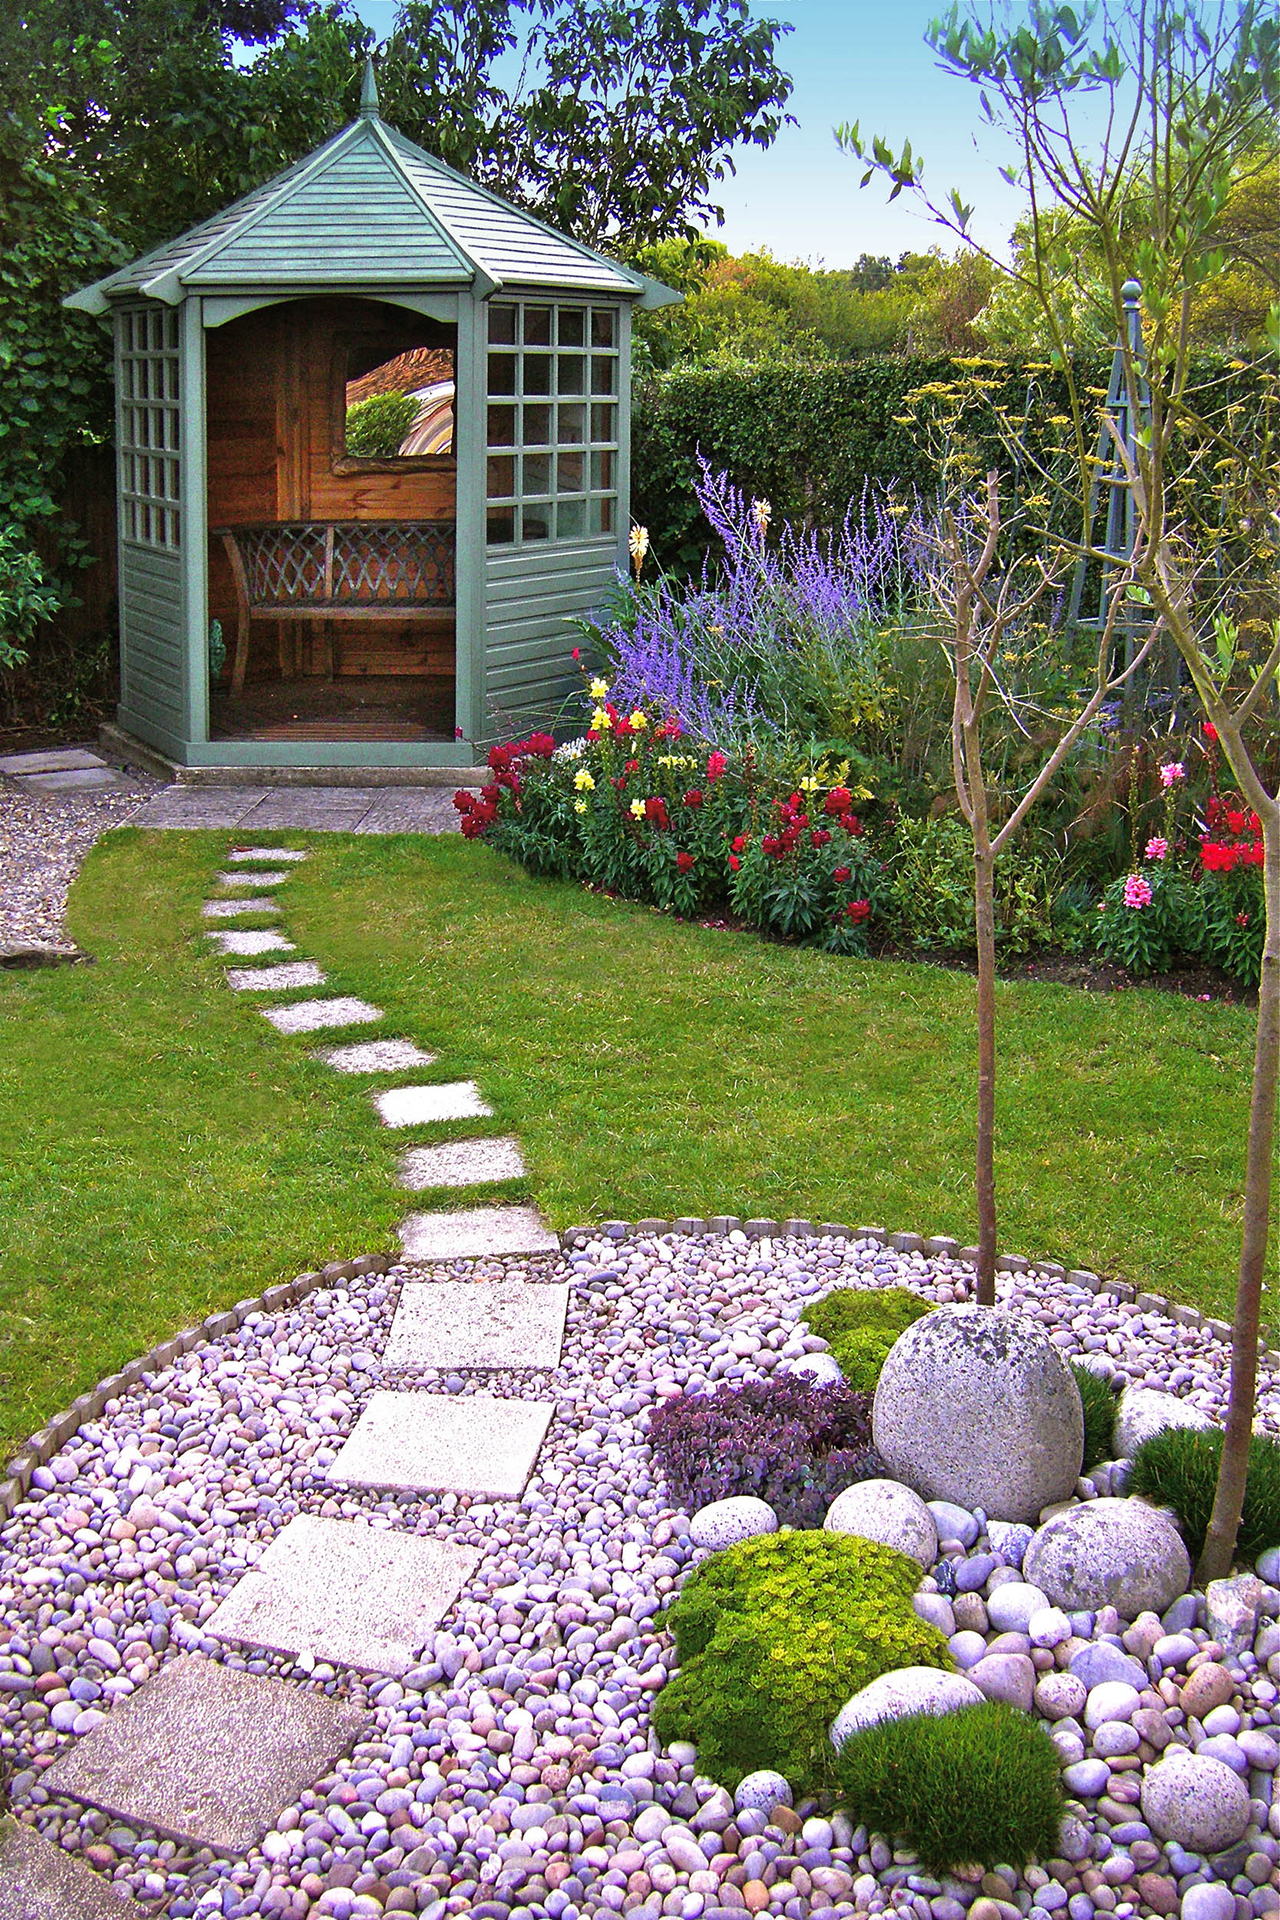 50 Best Backyard Landscaping Ideas And Designs In 2019 pertaining to 13 Awesome Ideas How to Build Cheap Backyard Landscaping Ideas